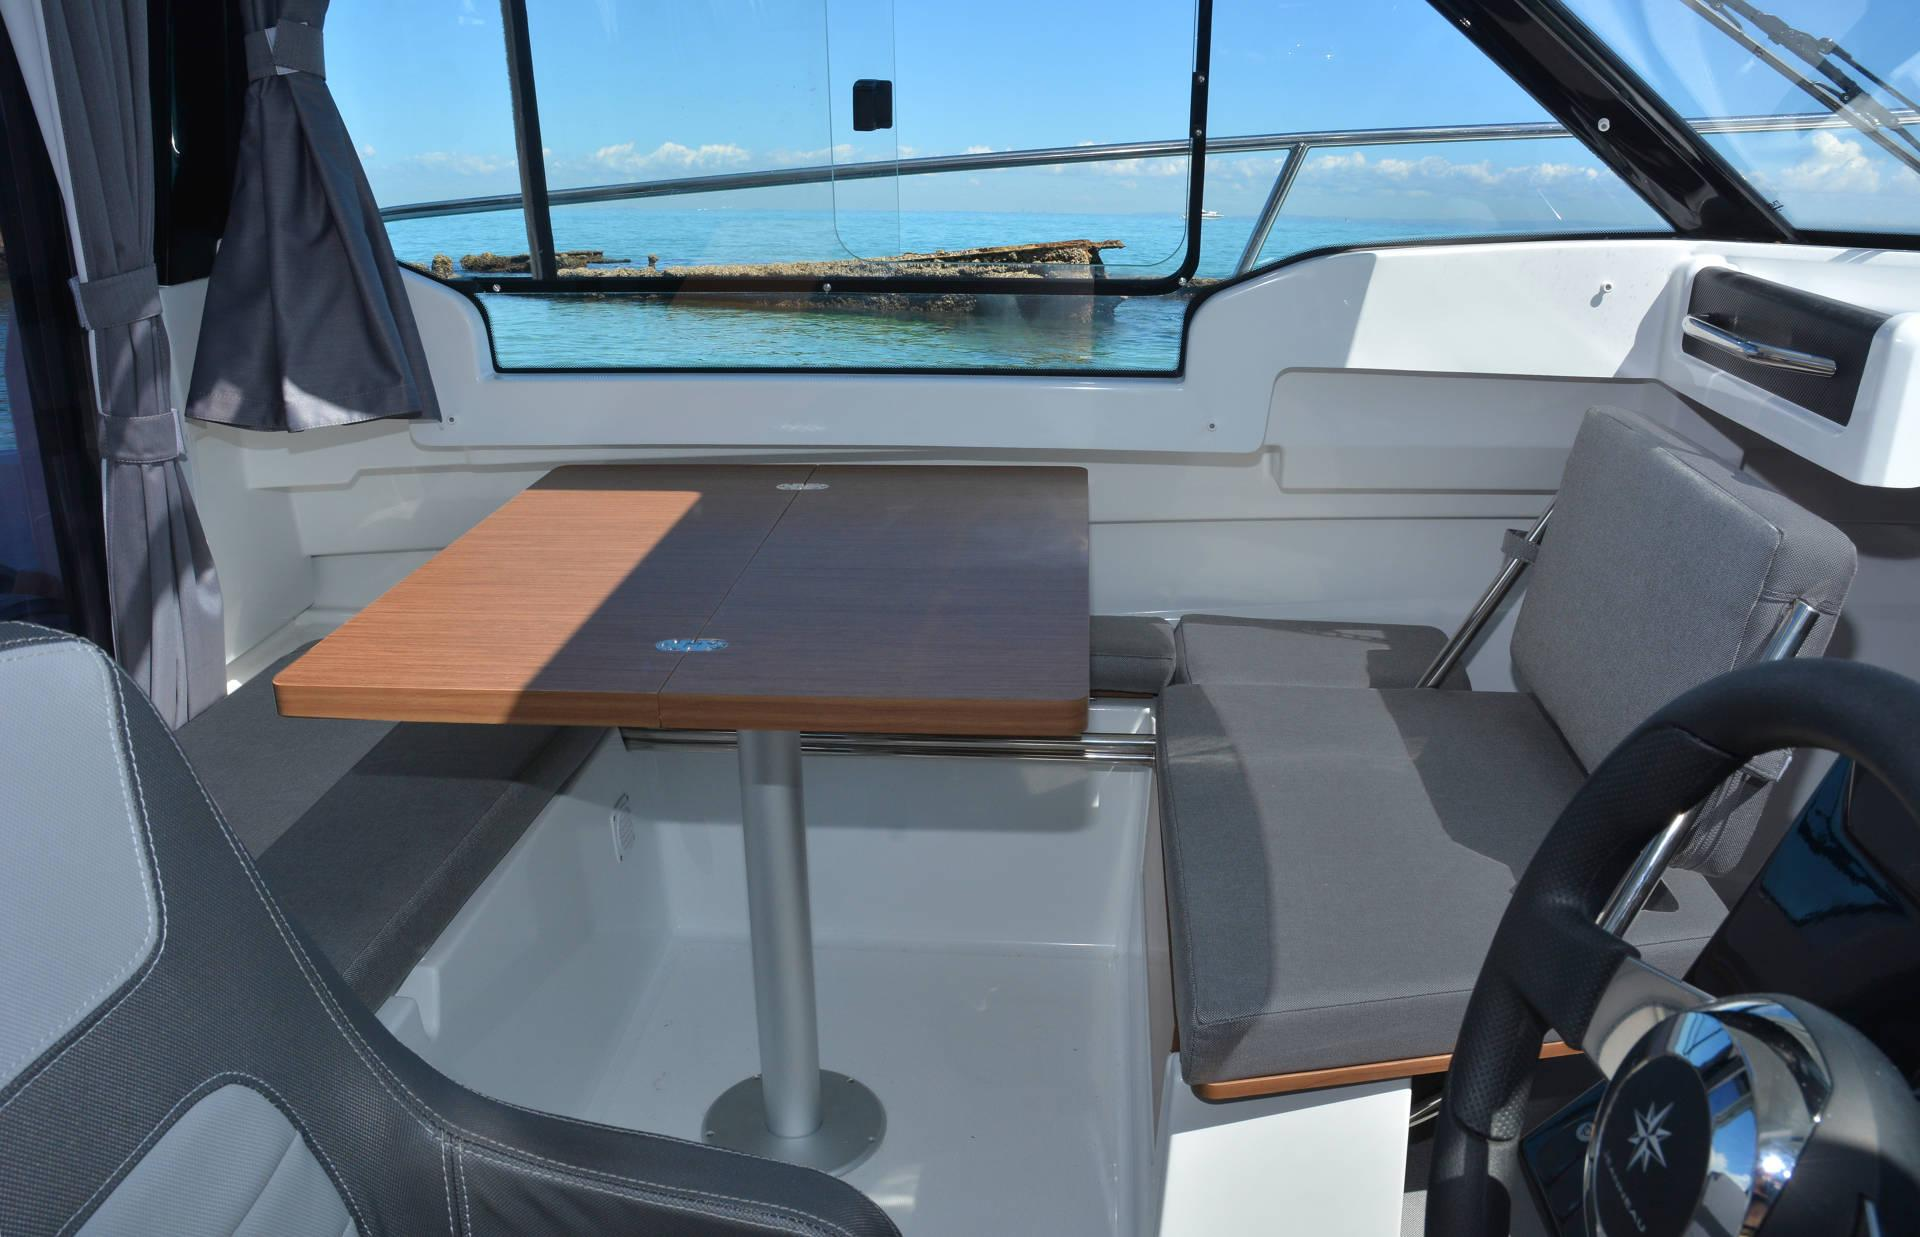 motorboat wooden table